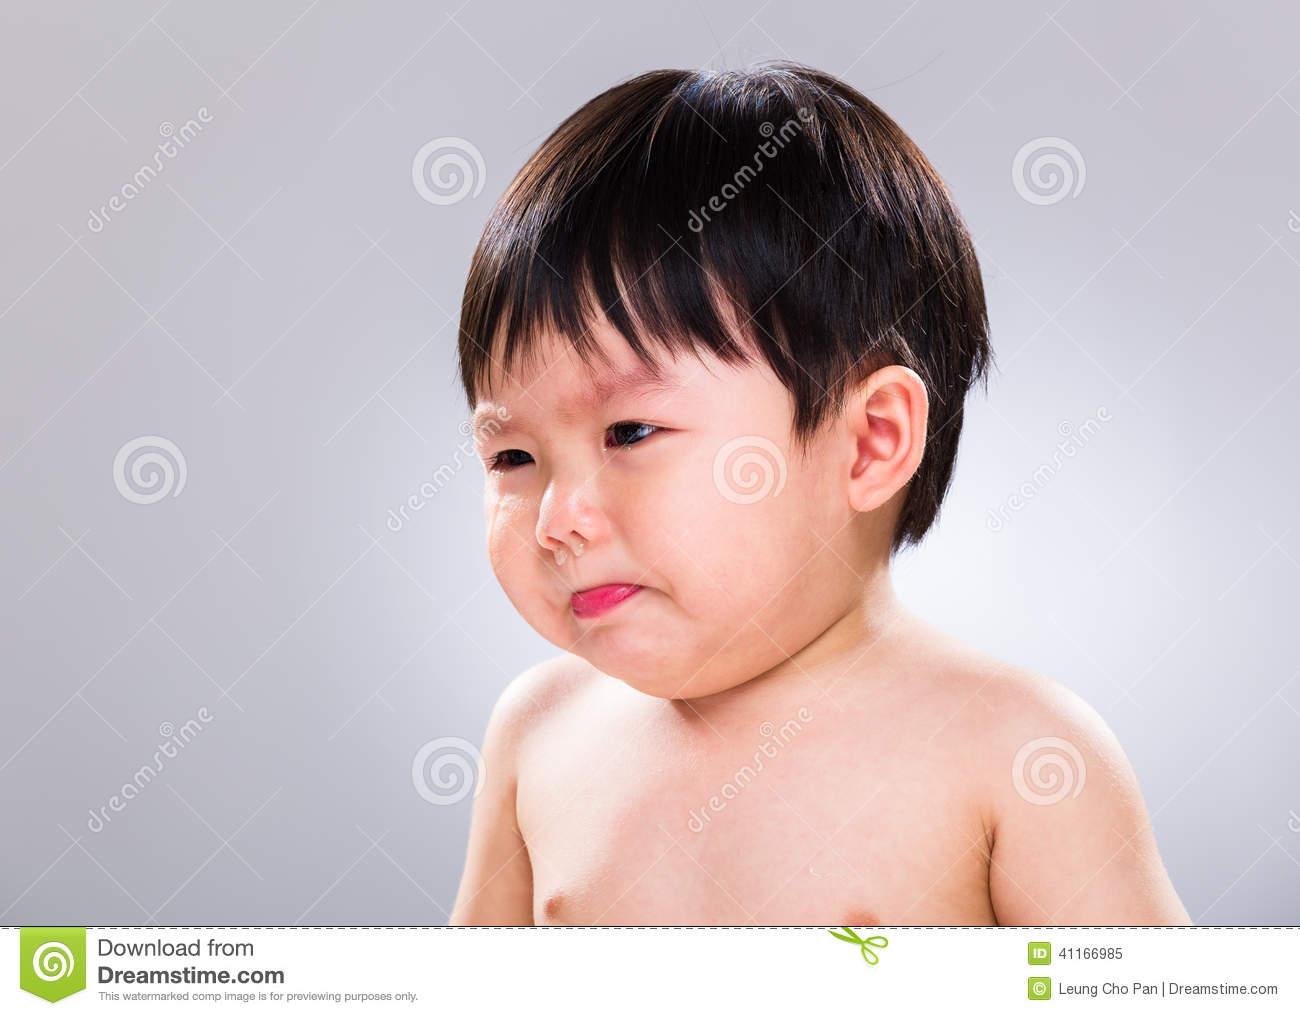 little boy jsut stop crying stock image image of baby purse 41166985